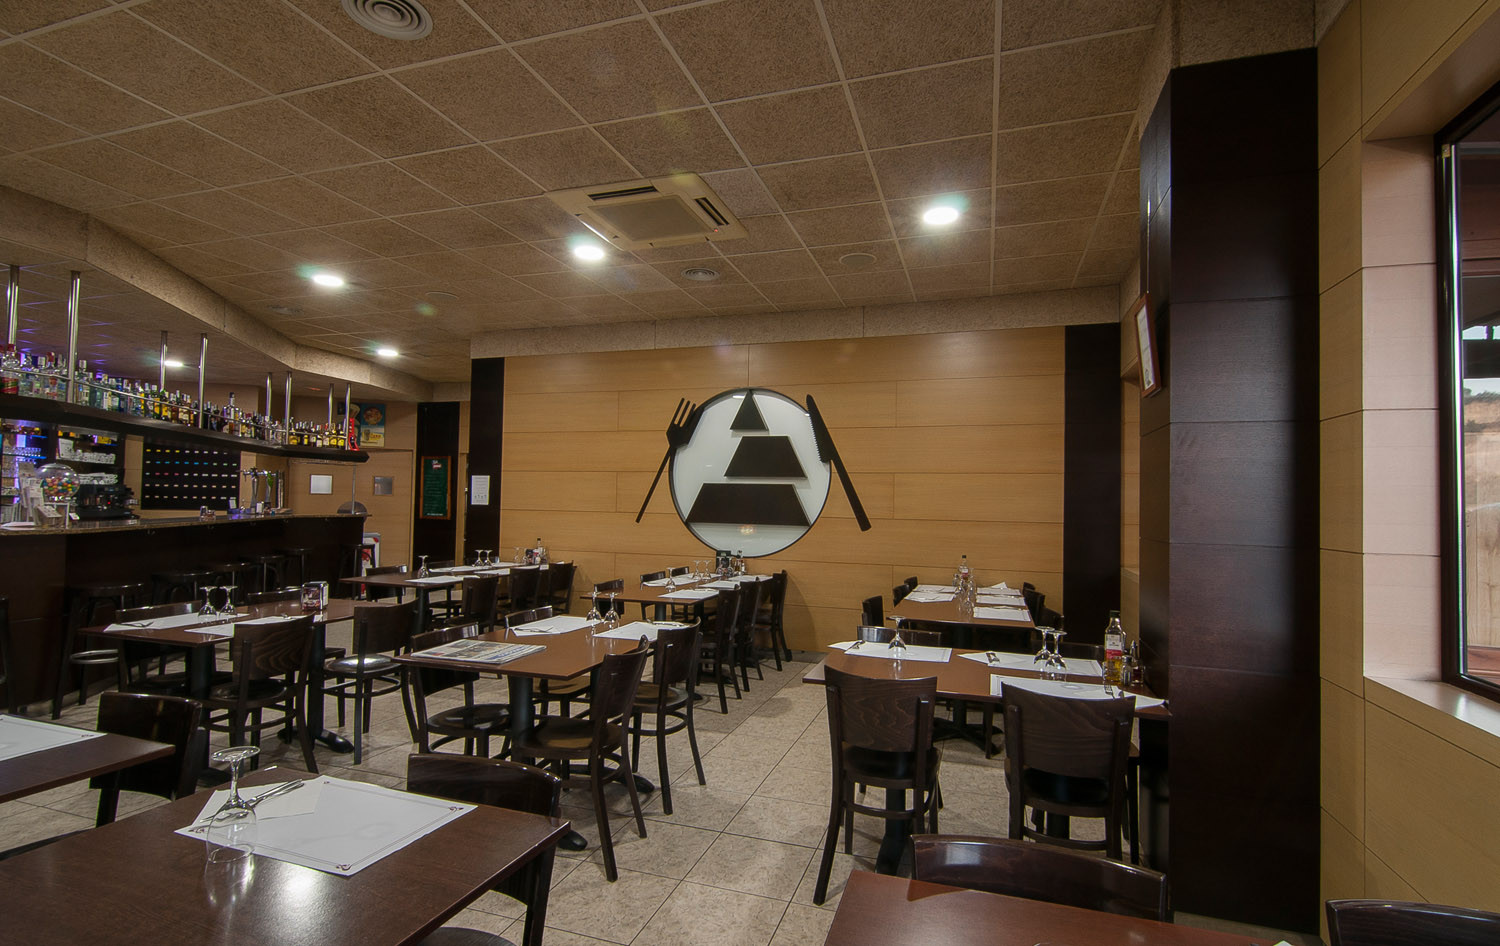 Restaurant El Triangle